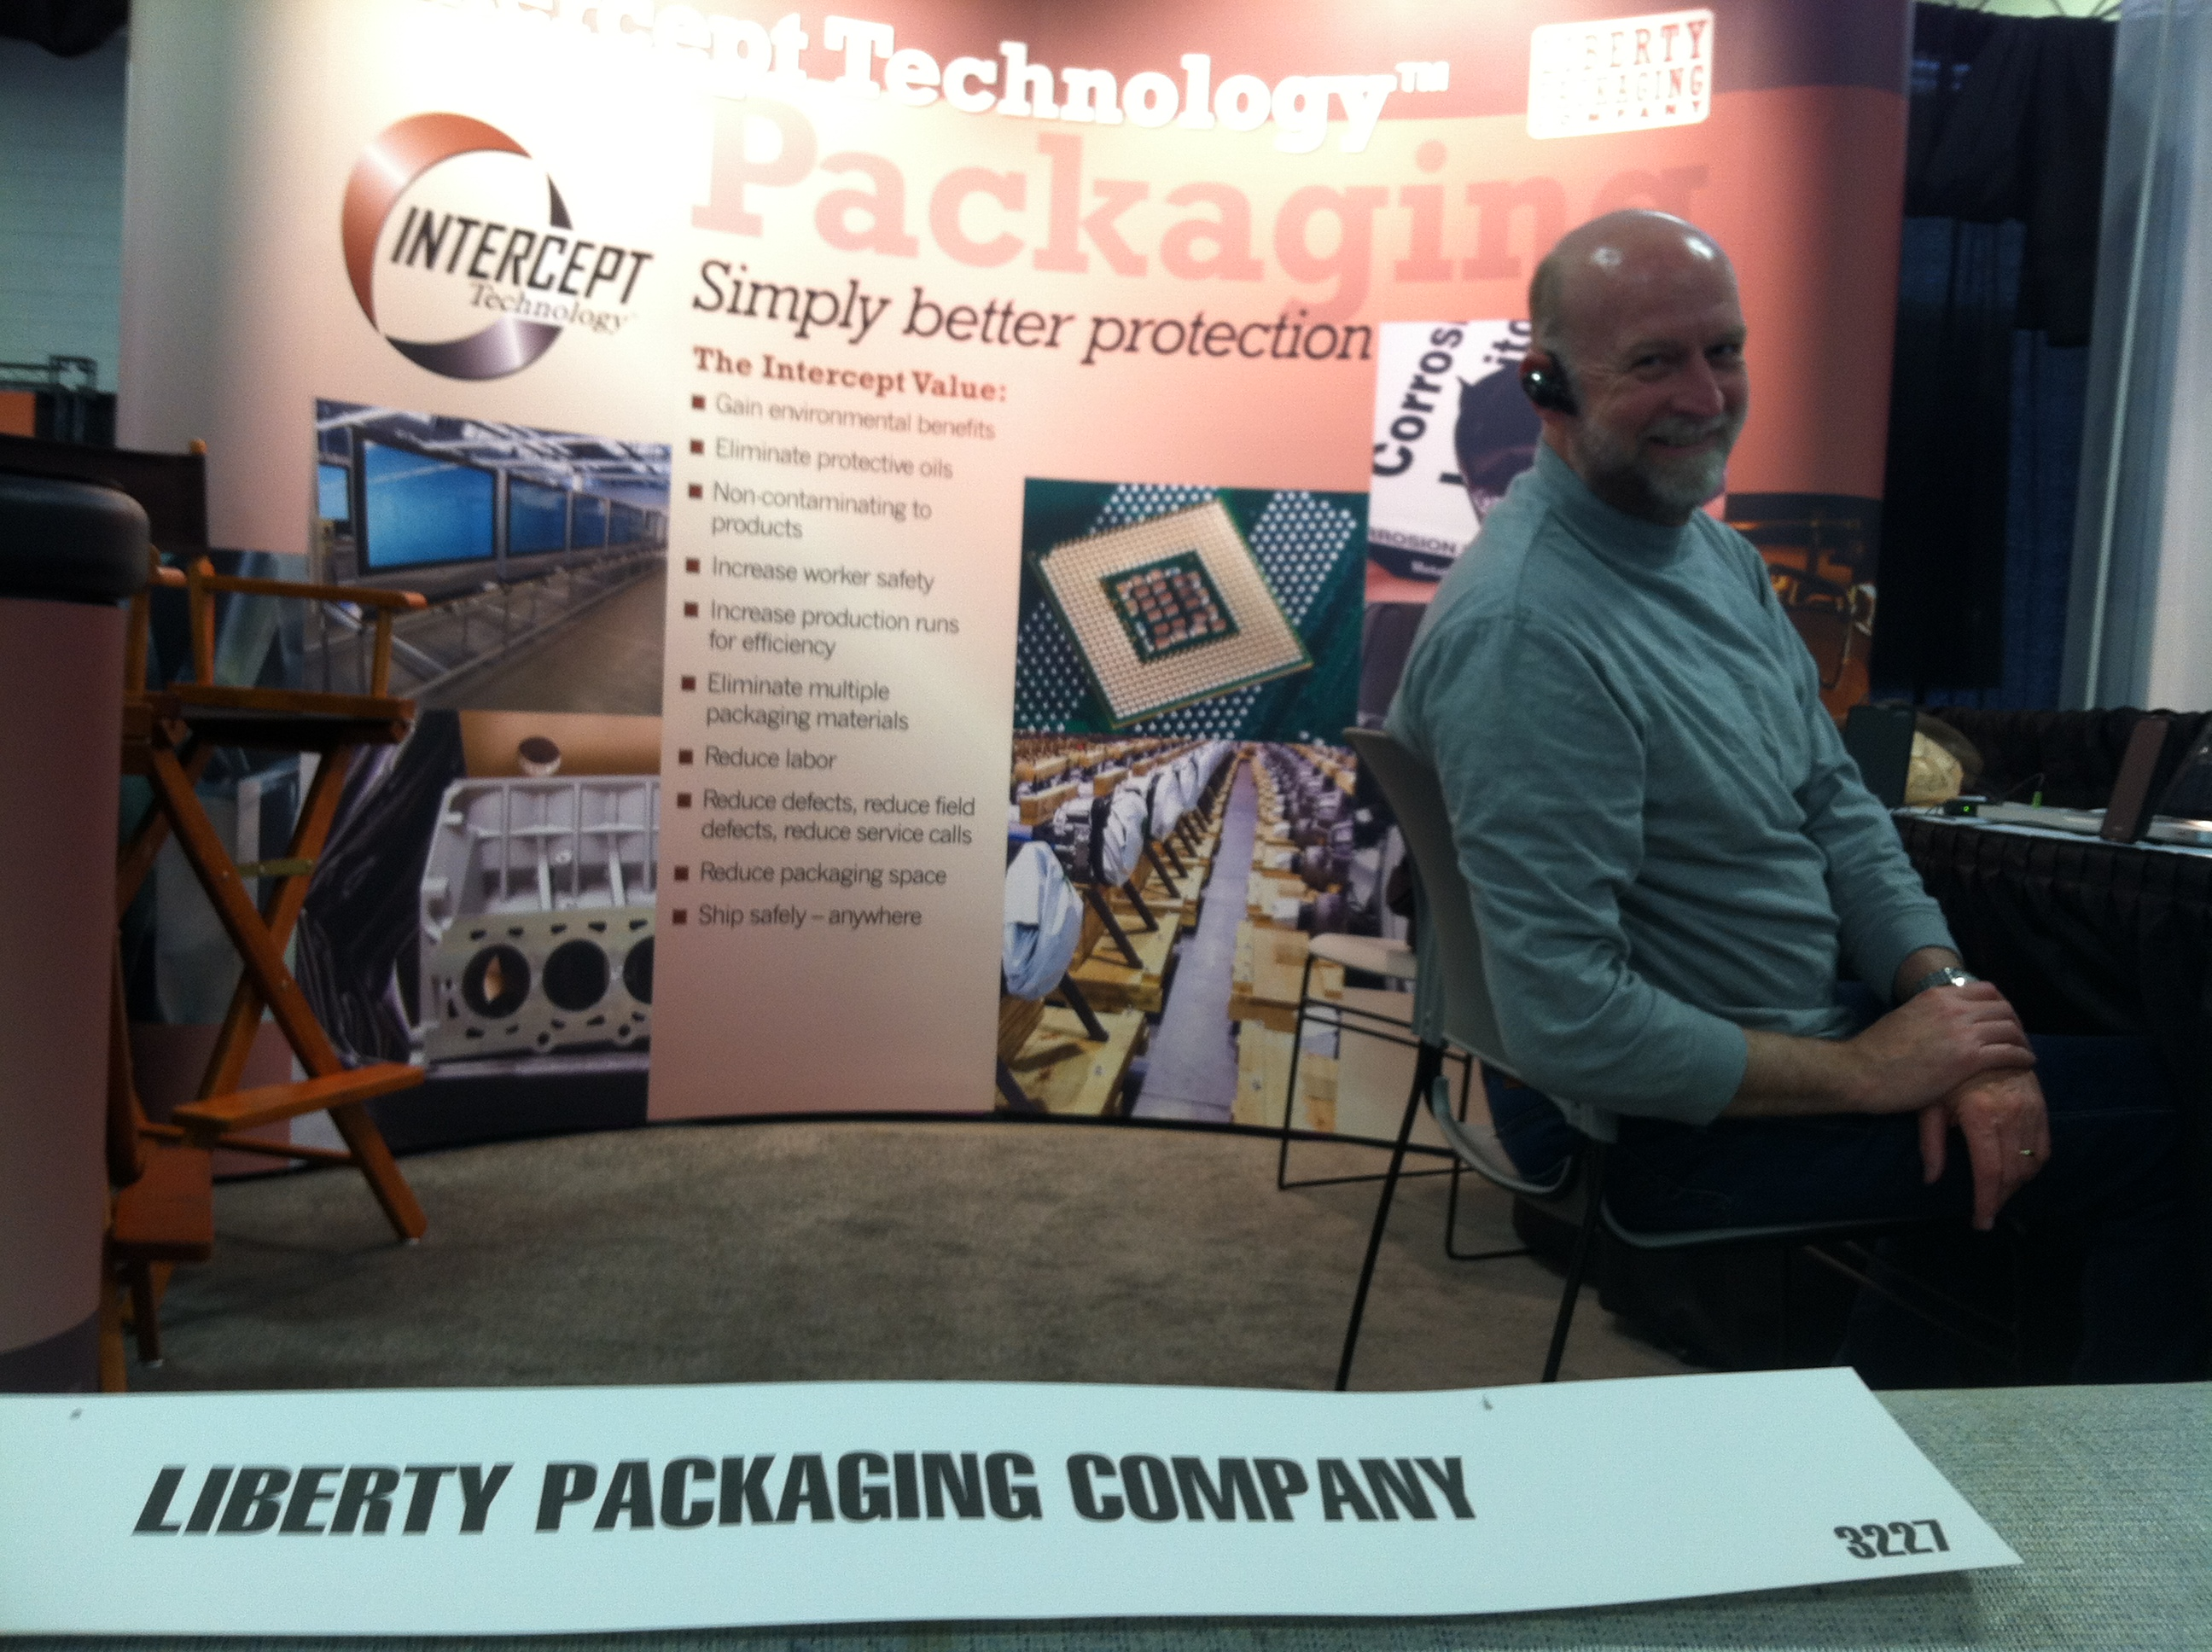 Intercept Packaging Ingenuity at EASTEC 2013